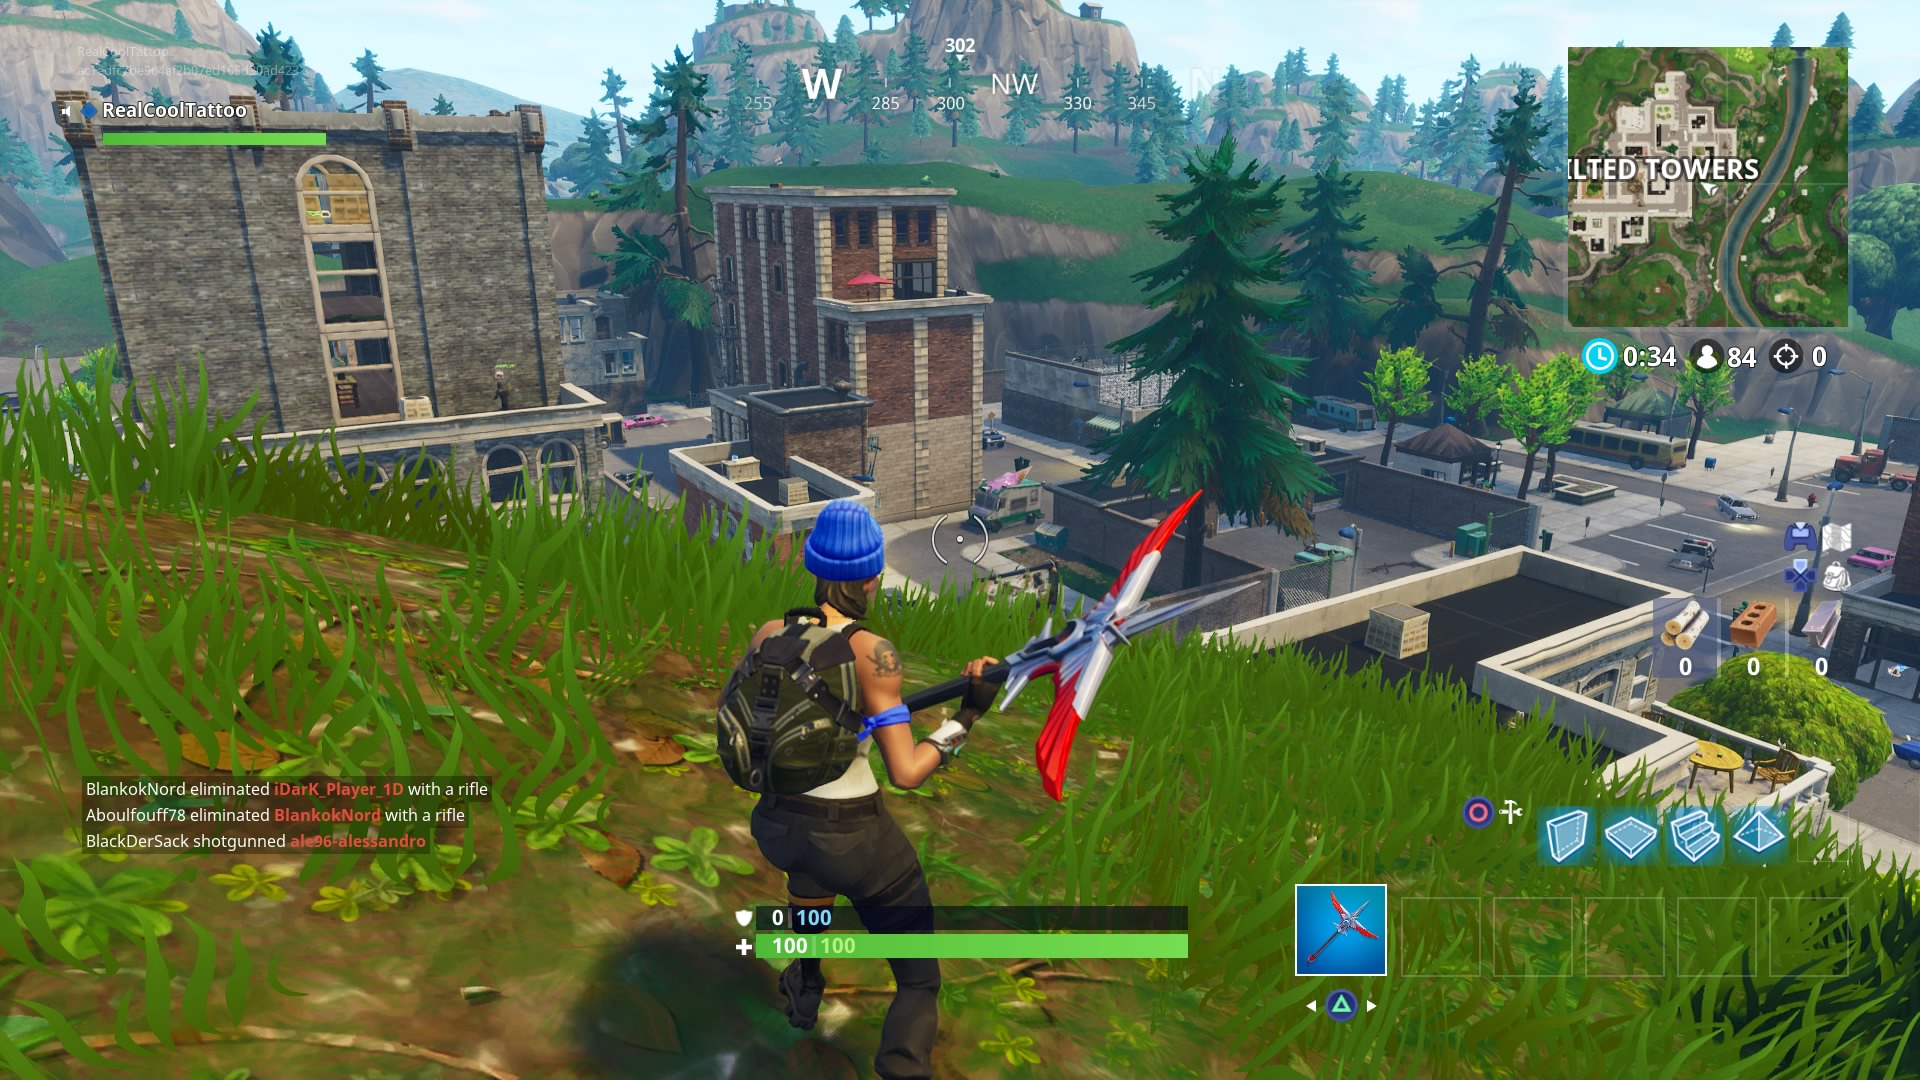 Fortnite: Pleasant Park Treasure Map location - Follow the ...